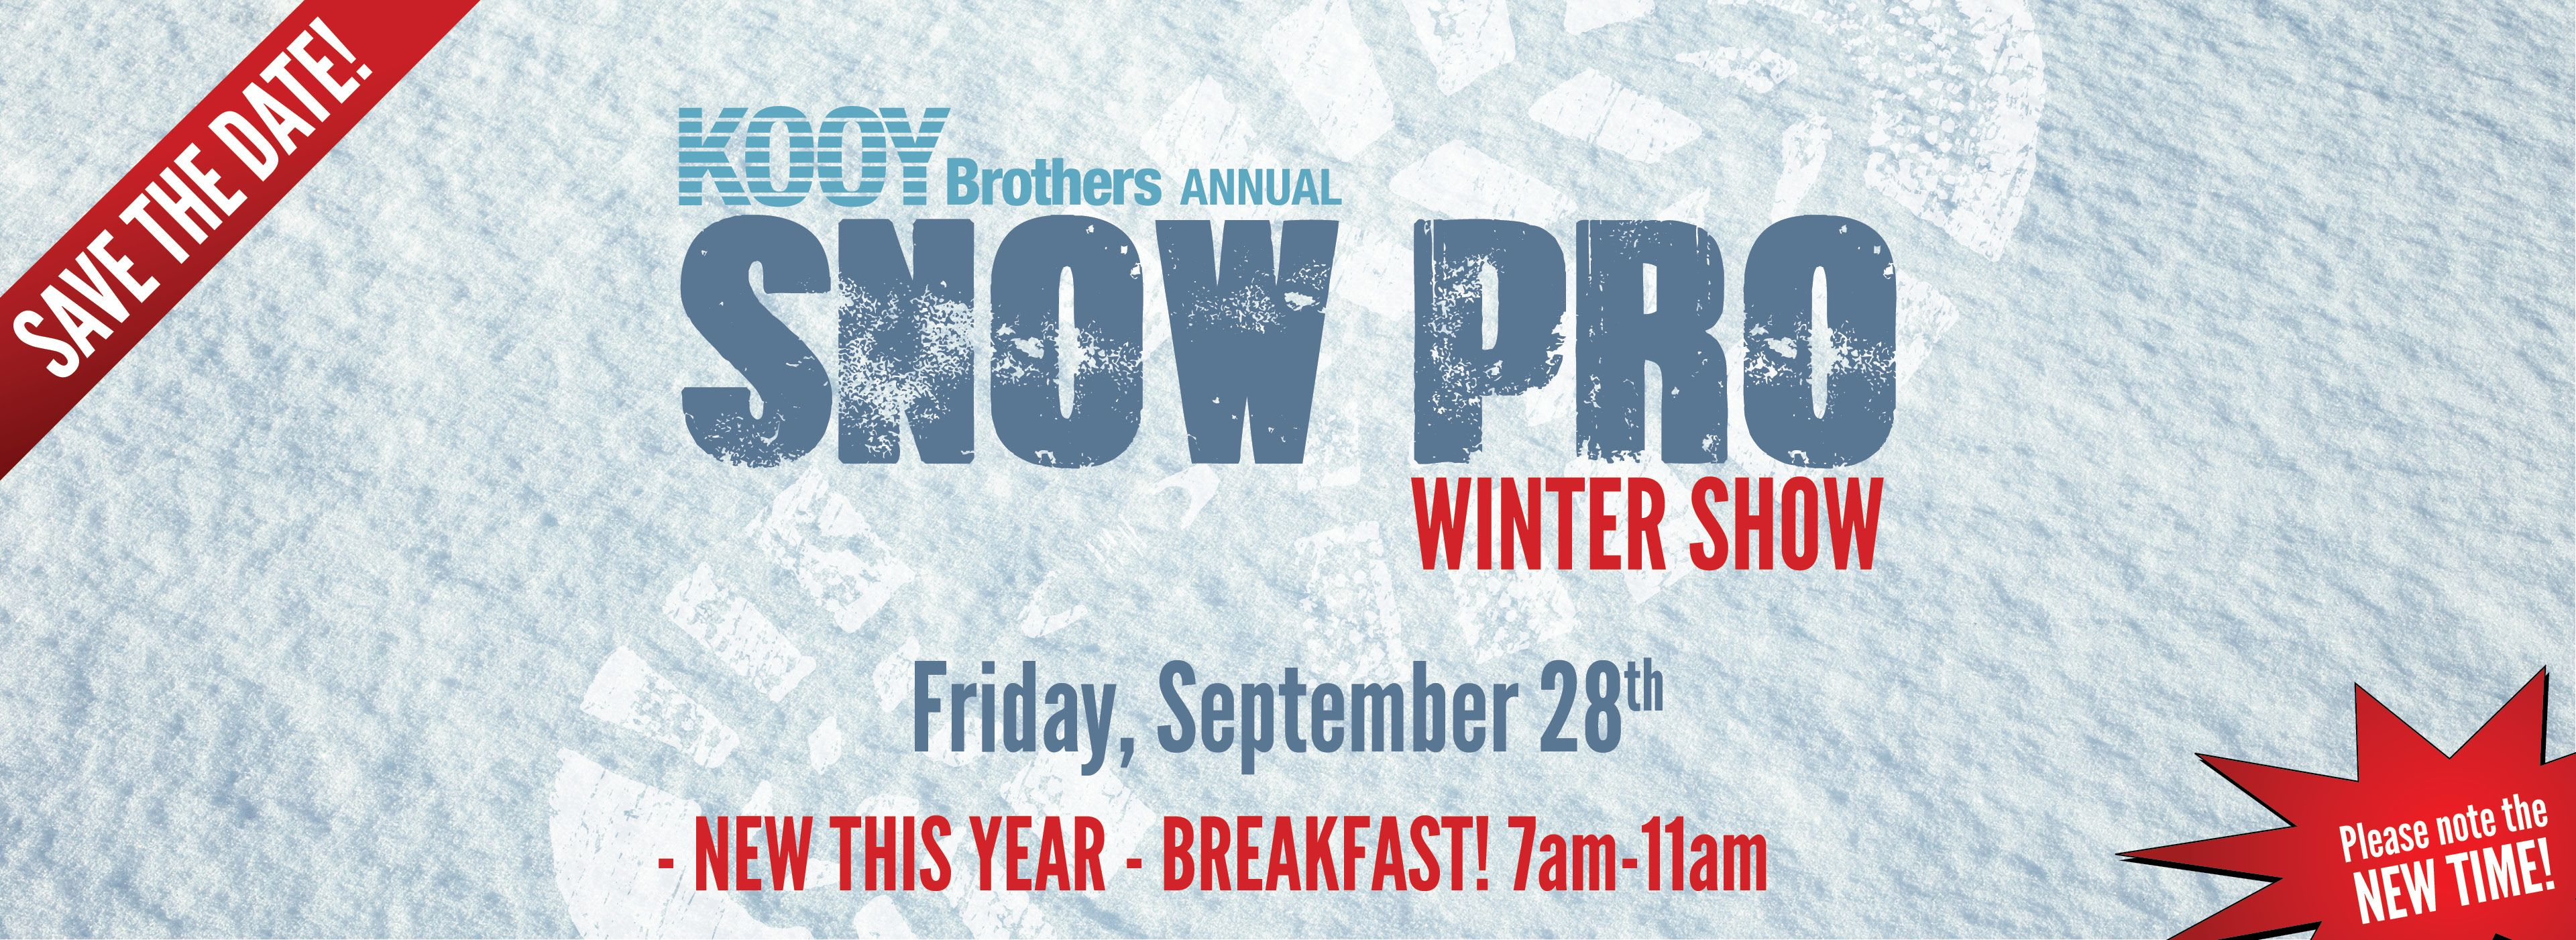 Snow Show Save The Date 2018